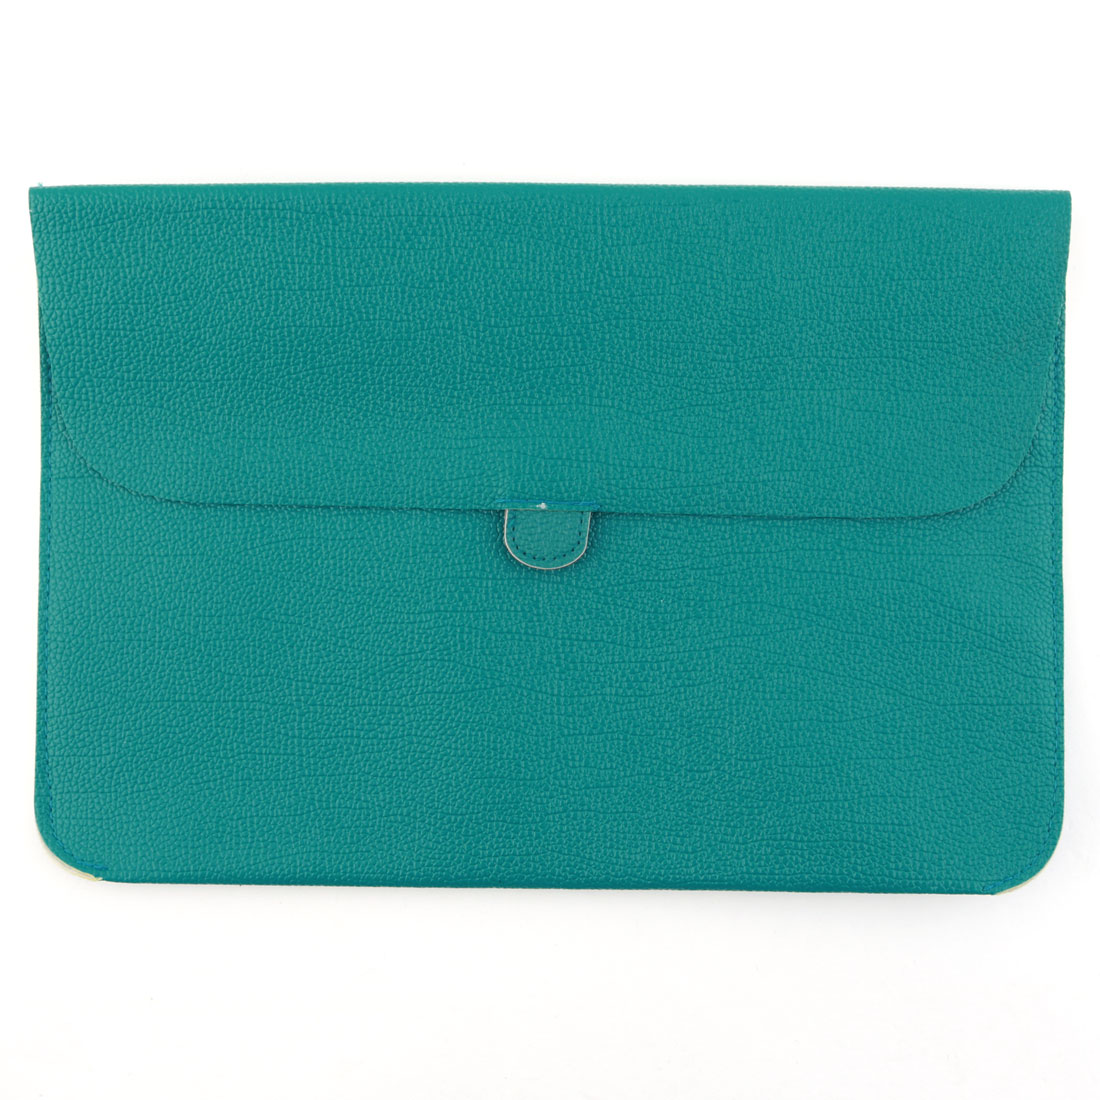 Carrying Laptop Case Pouch Envelope Shape Tablet Sleeve Bag Egg Blue for Macbook 13.3""